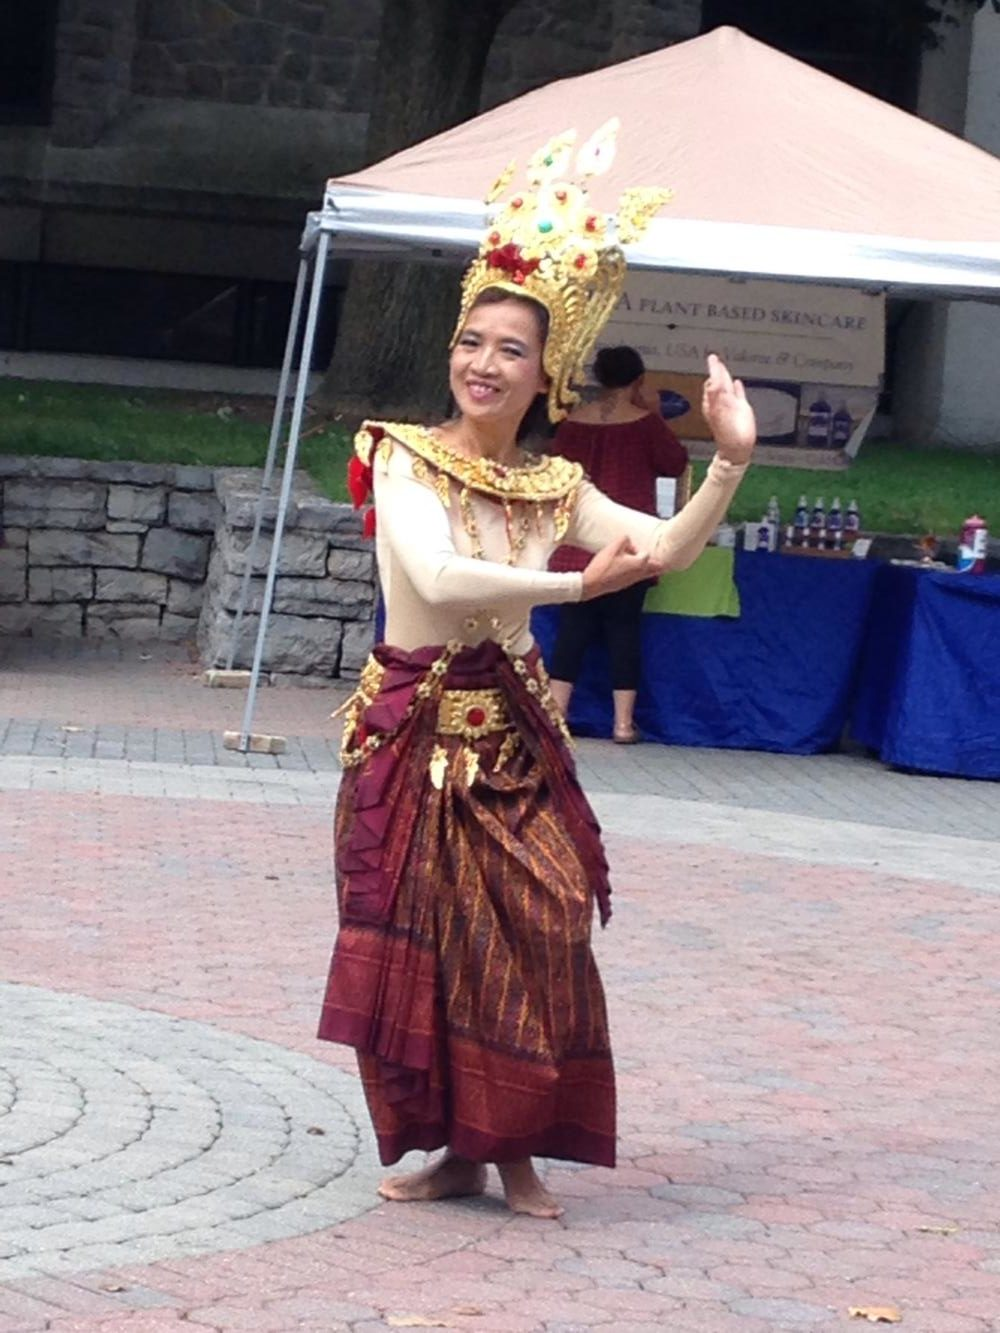 A dancer on Britton Plaza during the Loving Kindness Festival last weekend.